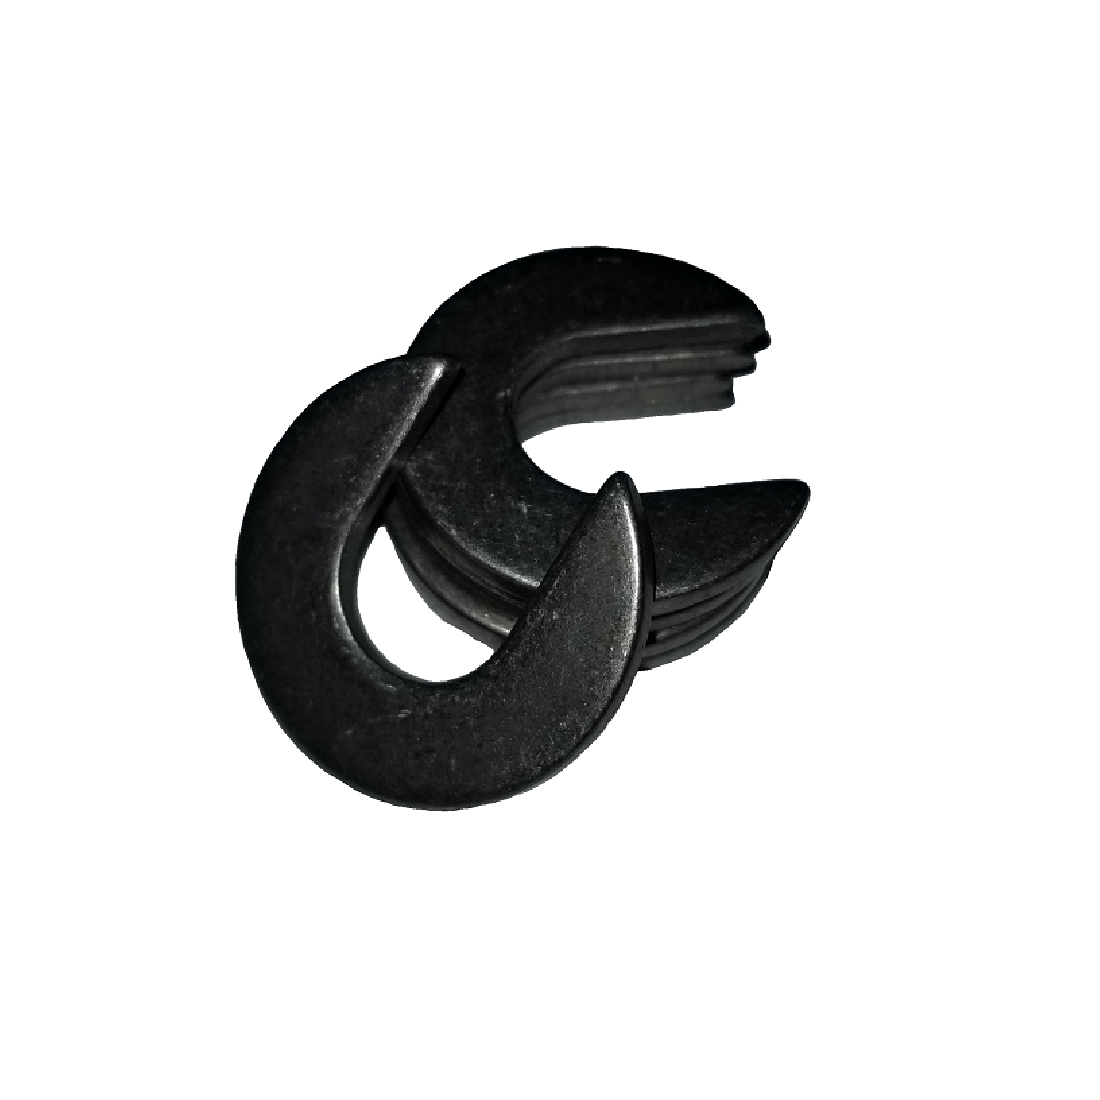 Slotted Washer - 0.150 ID, 0.437 OD, 0.025 Thick, Spring Steel - Hard